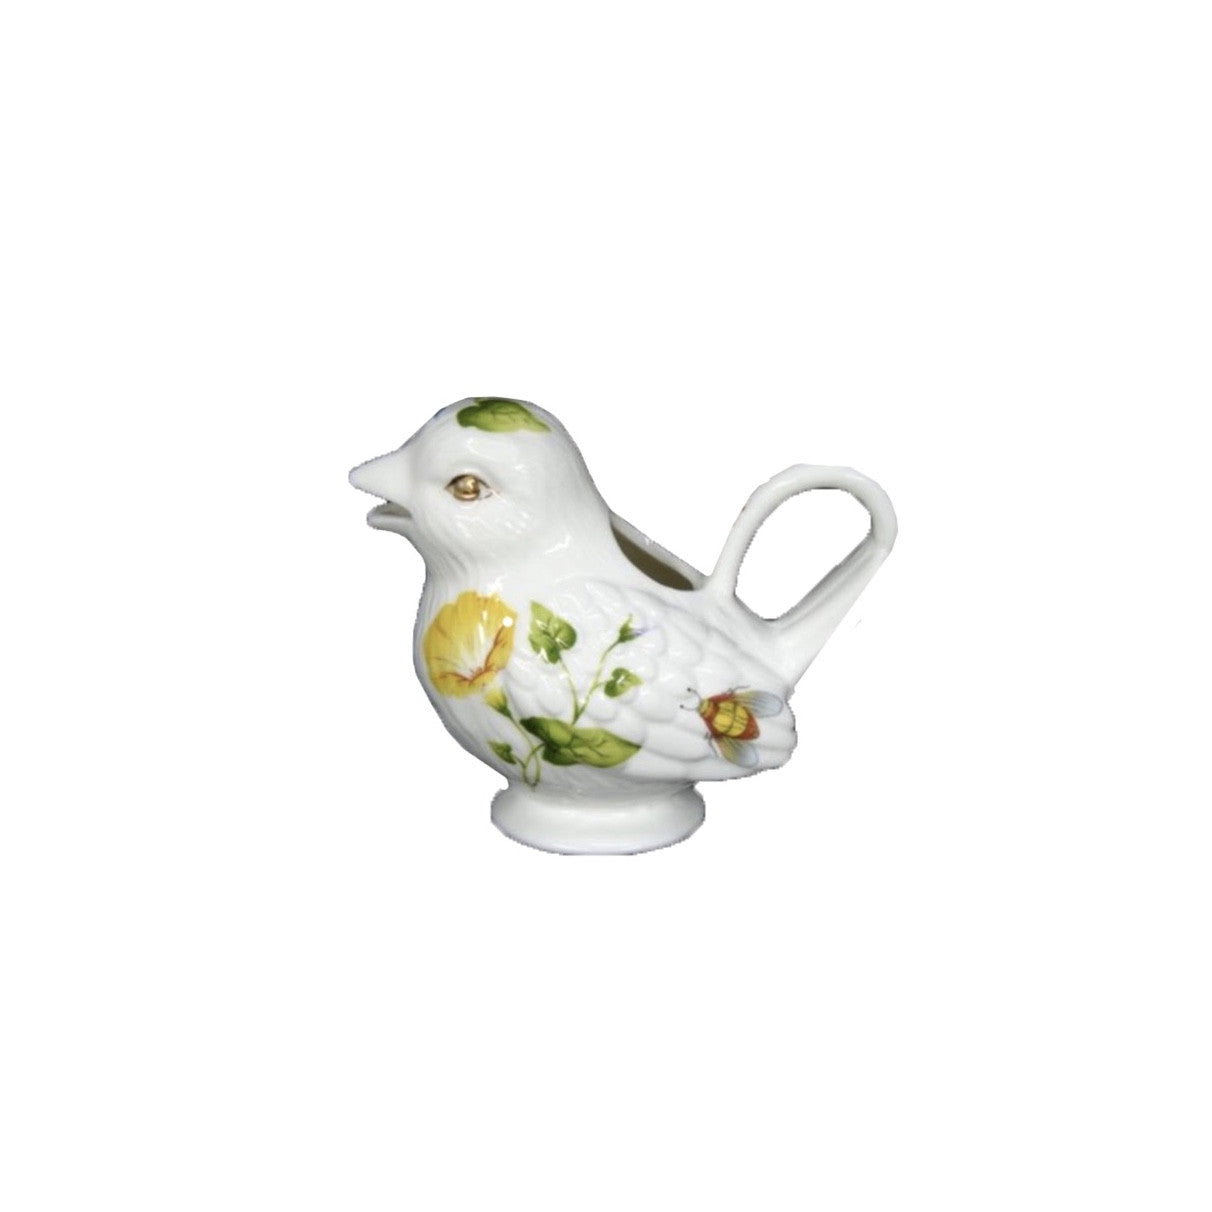 Floral Bird Creamer, JLB-J L Bradshaws, Putti Fine Furnishings